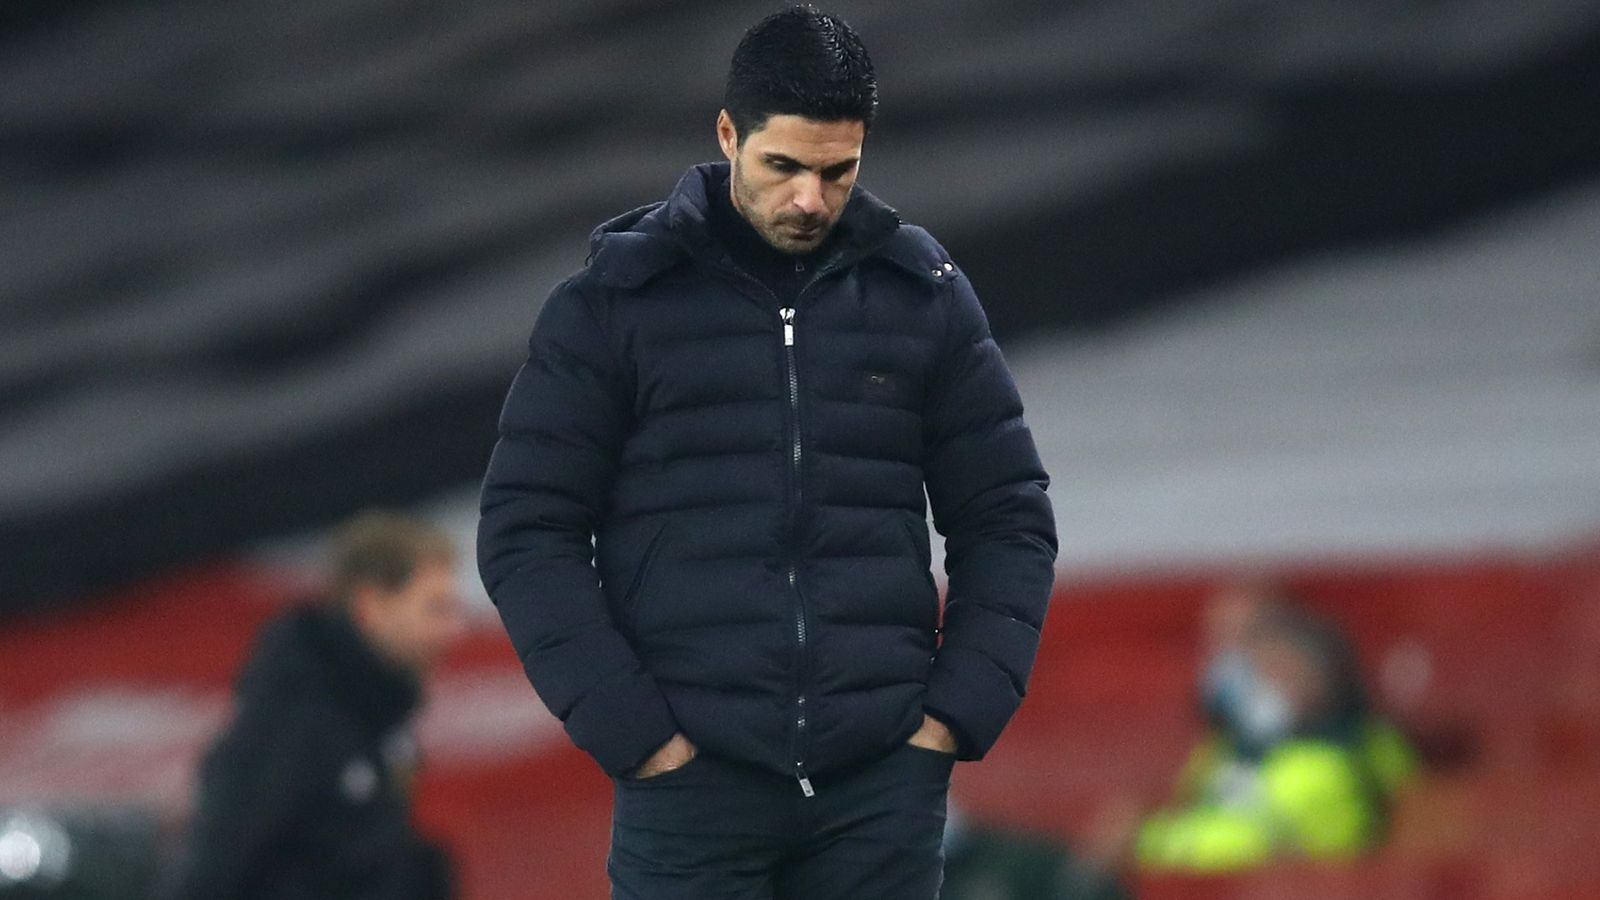 Mikel Arteta 'really concerned' by Arsenal form; Roy Keane says players 'aren't good enough' | Football News | Sky Sports